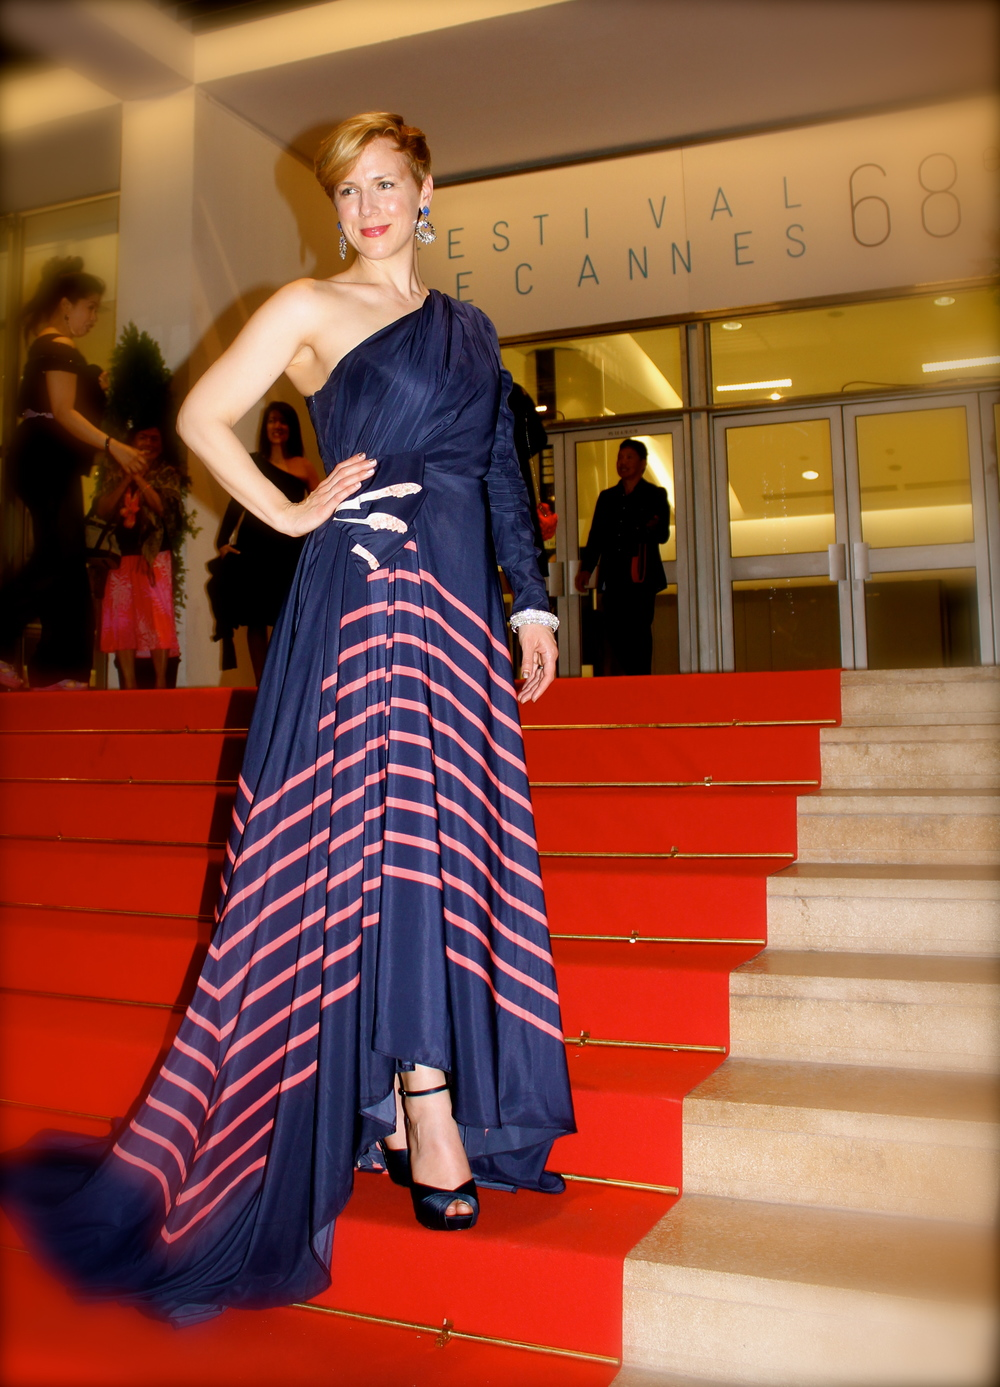 Grace McPhillips in Red Carpet Gown by Veronica Sheaffer